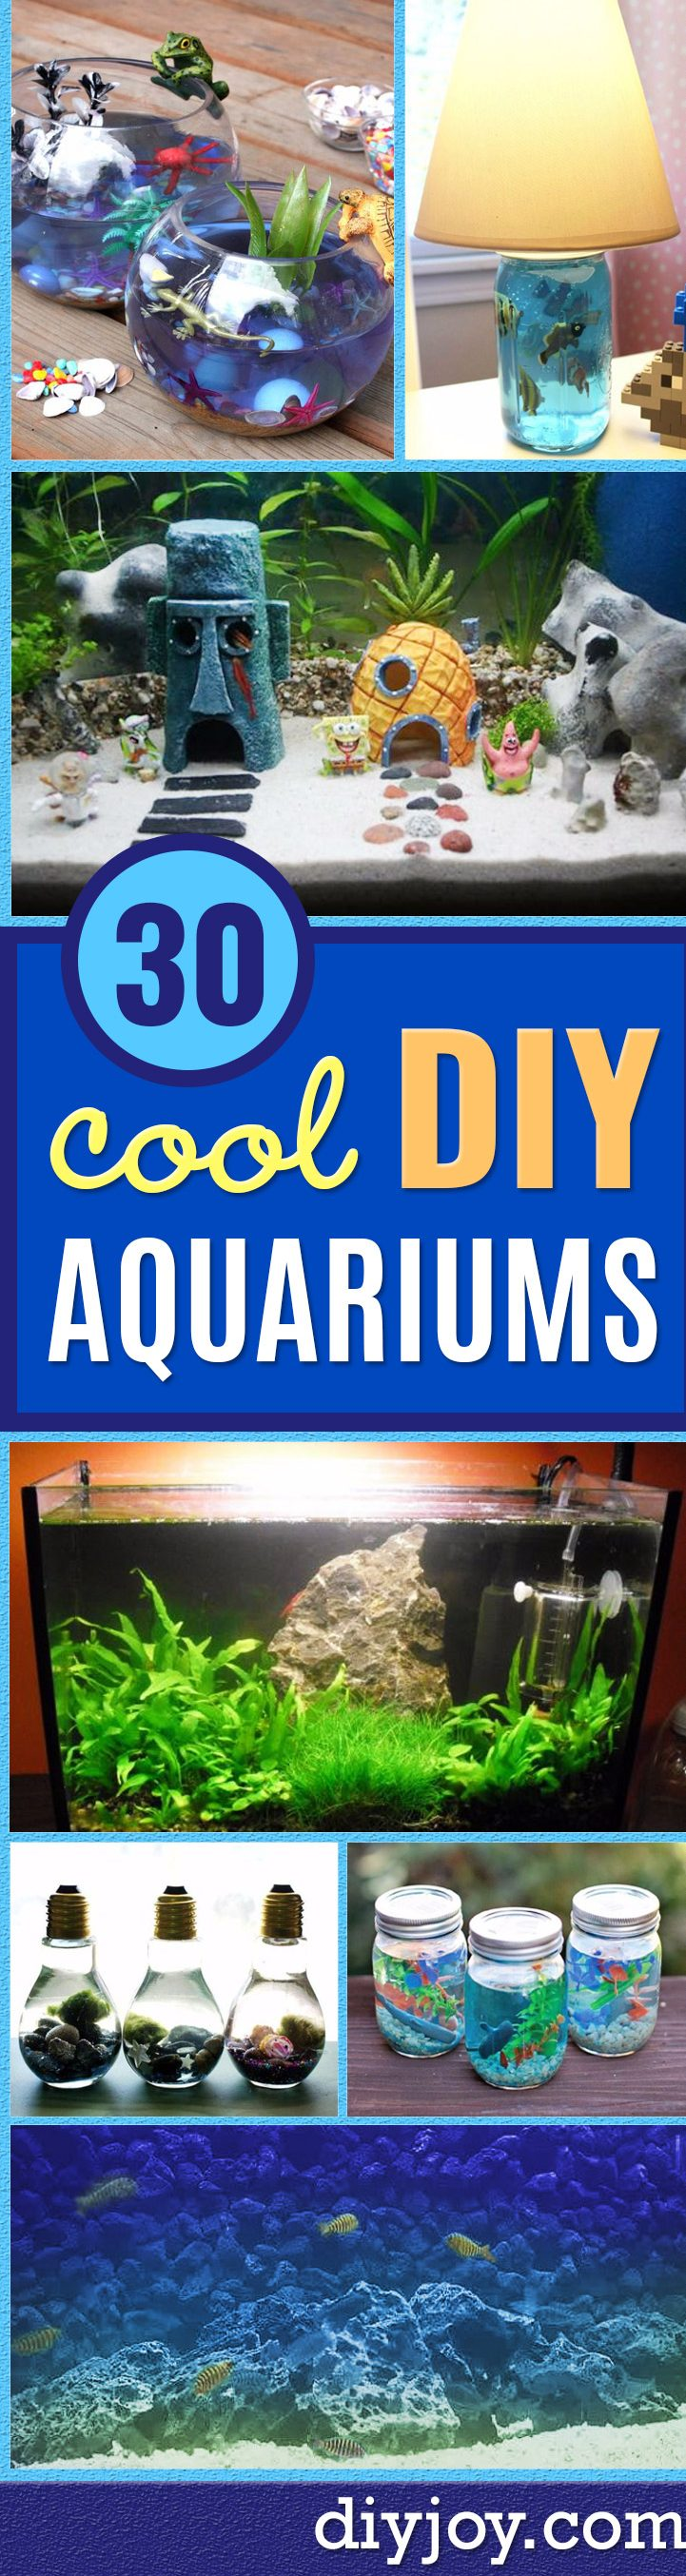 DIY Aquarium Ideas - Cool and Easy Decorations for Tank Aquariums, Mason Jar, Wall and Stand Projects for Fish - Creative Background Ideas - Fun Tutorials for Kids to Make With Plants and Decor - Best Home Decor and Crafts by DIY JOY